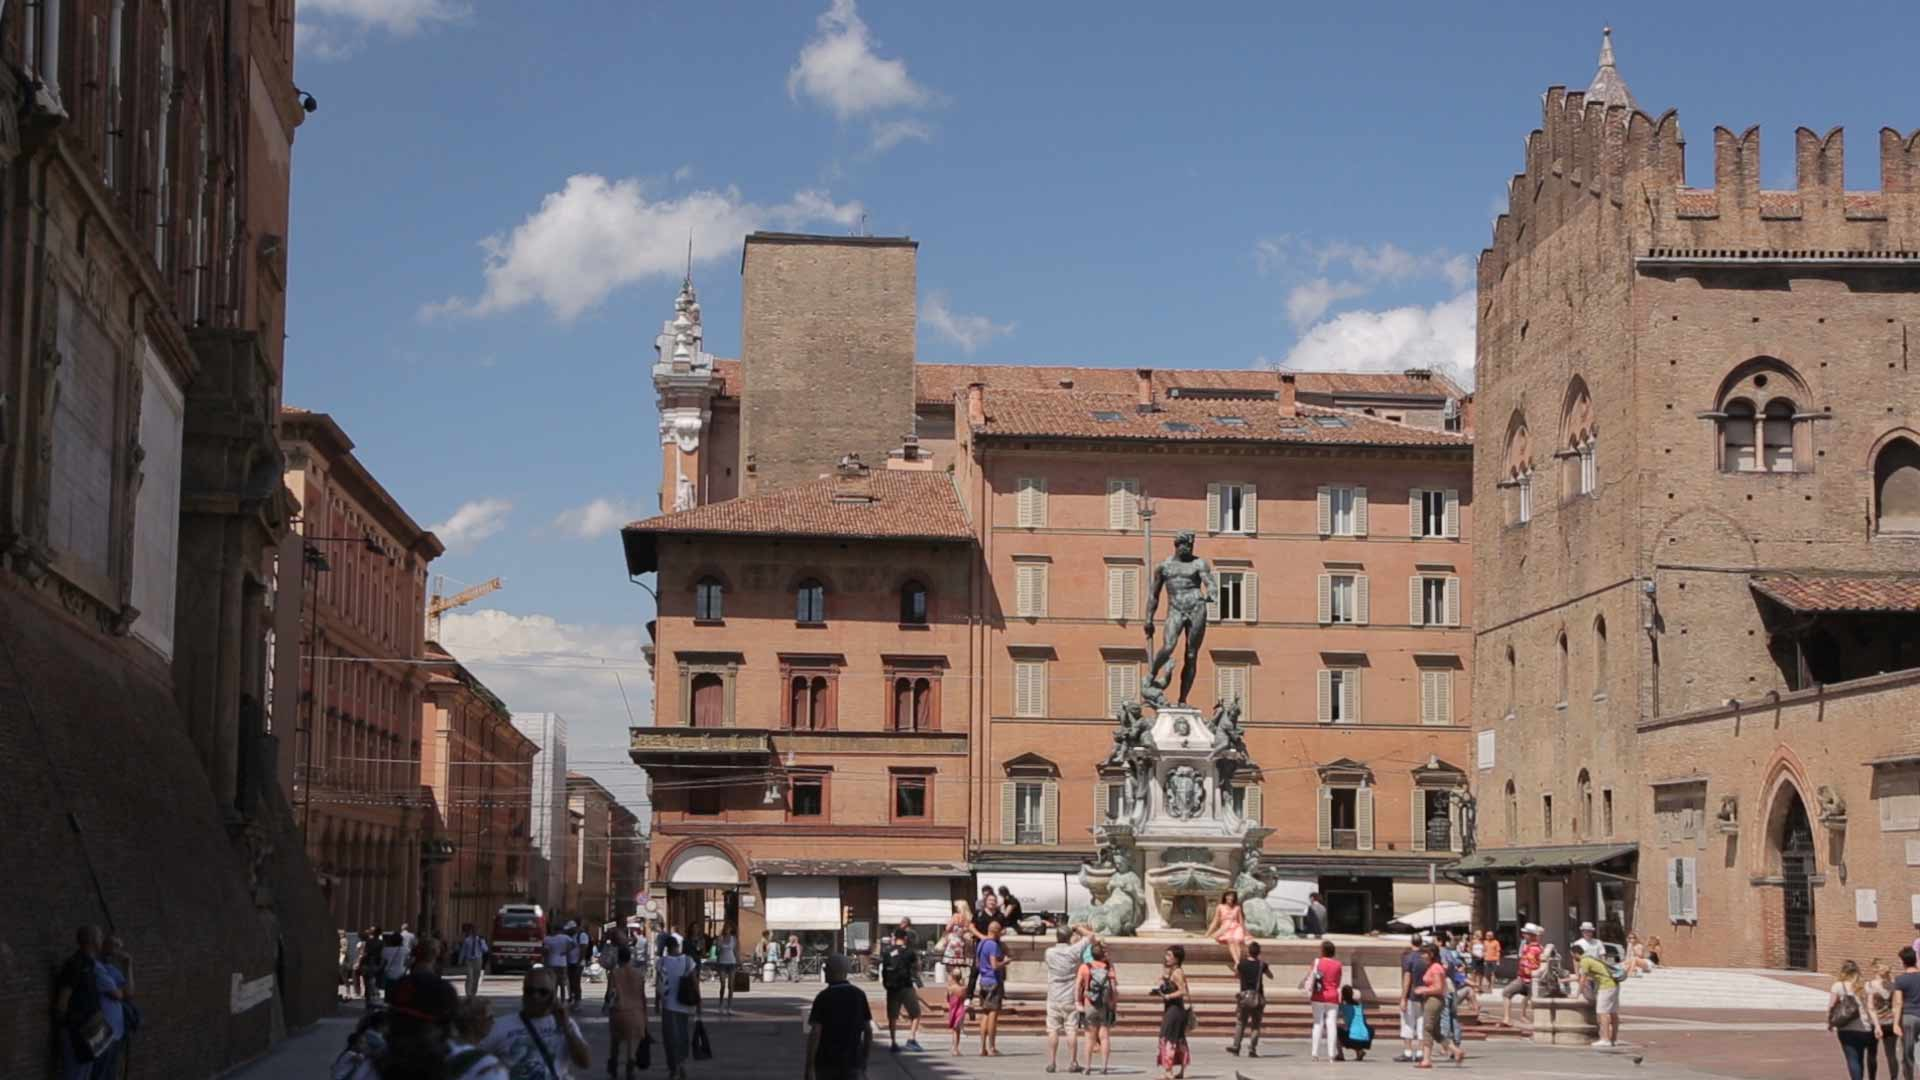 GUIDED VISIT TO BOLOGNA - CAVALLOTI TRAVEL